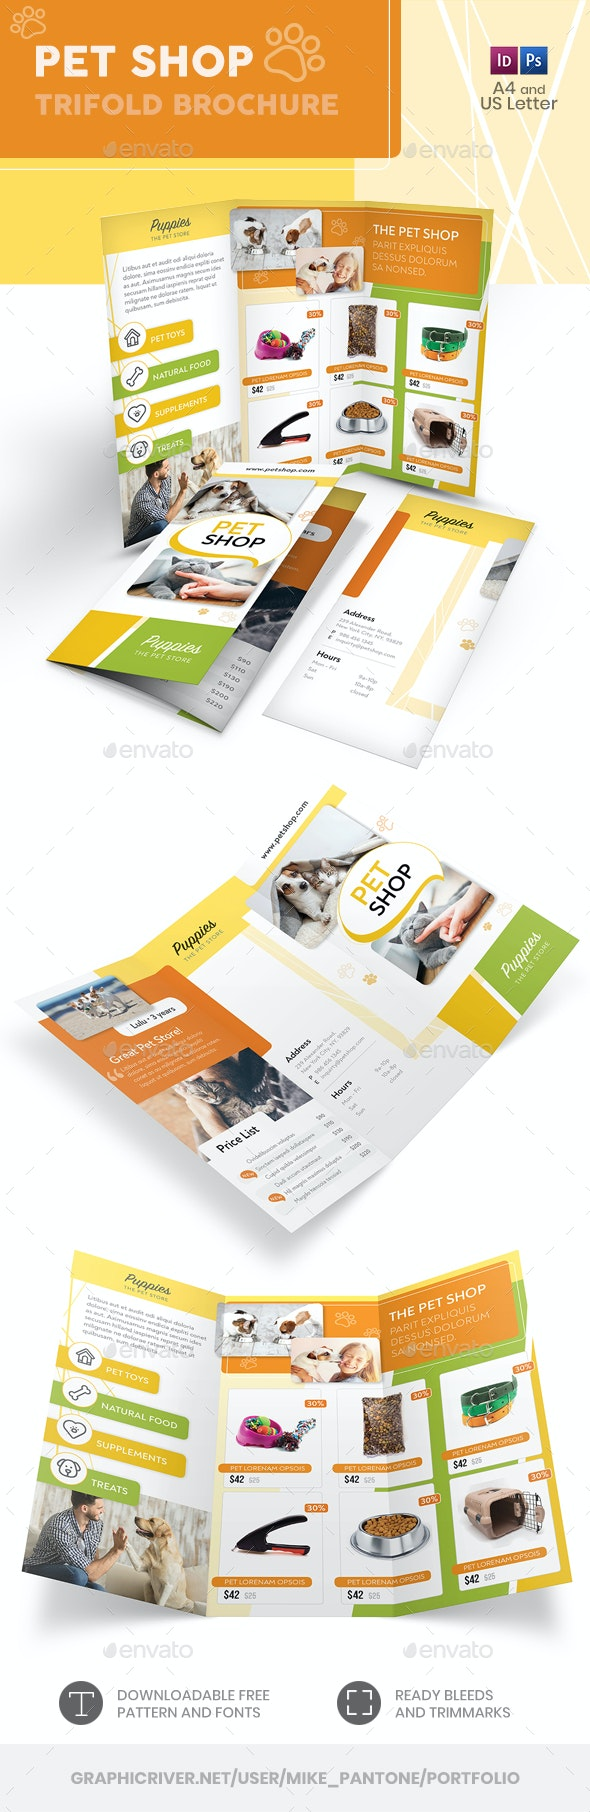 Pet Shop Trifold Brochure - Informational Brochures